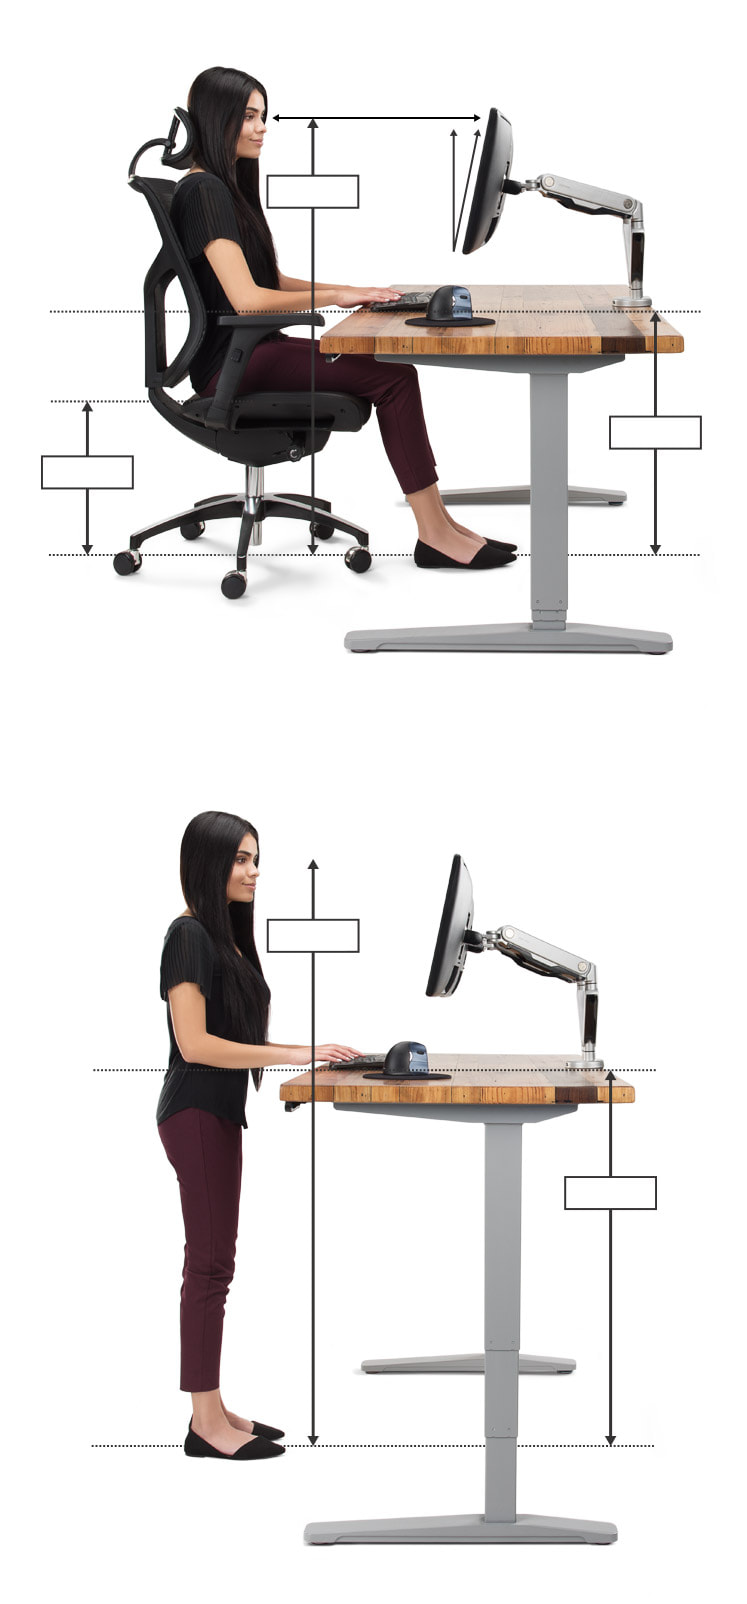 Ergonomic Office Desk, Chair, and Keyboard Height Calculator